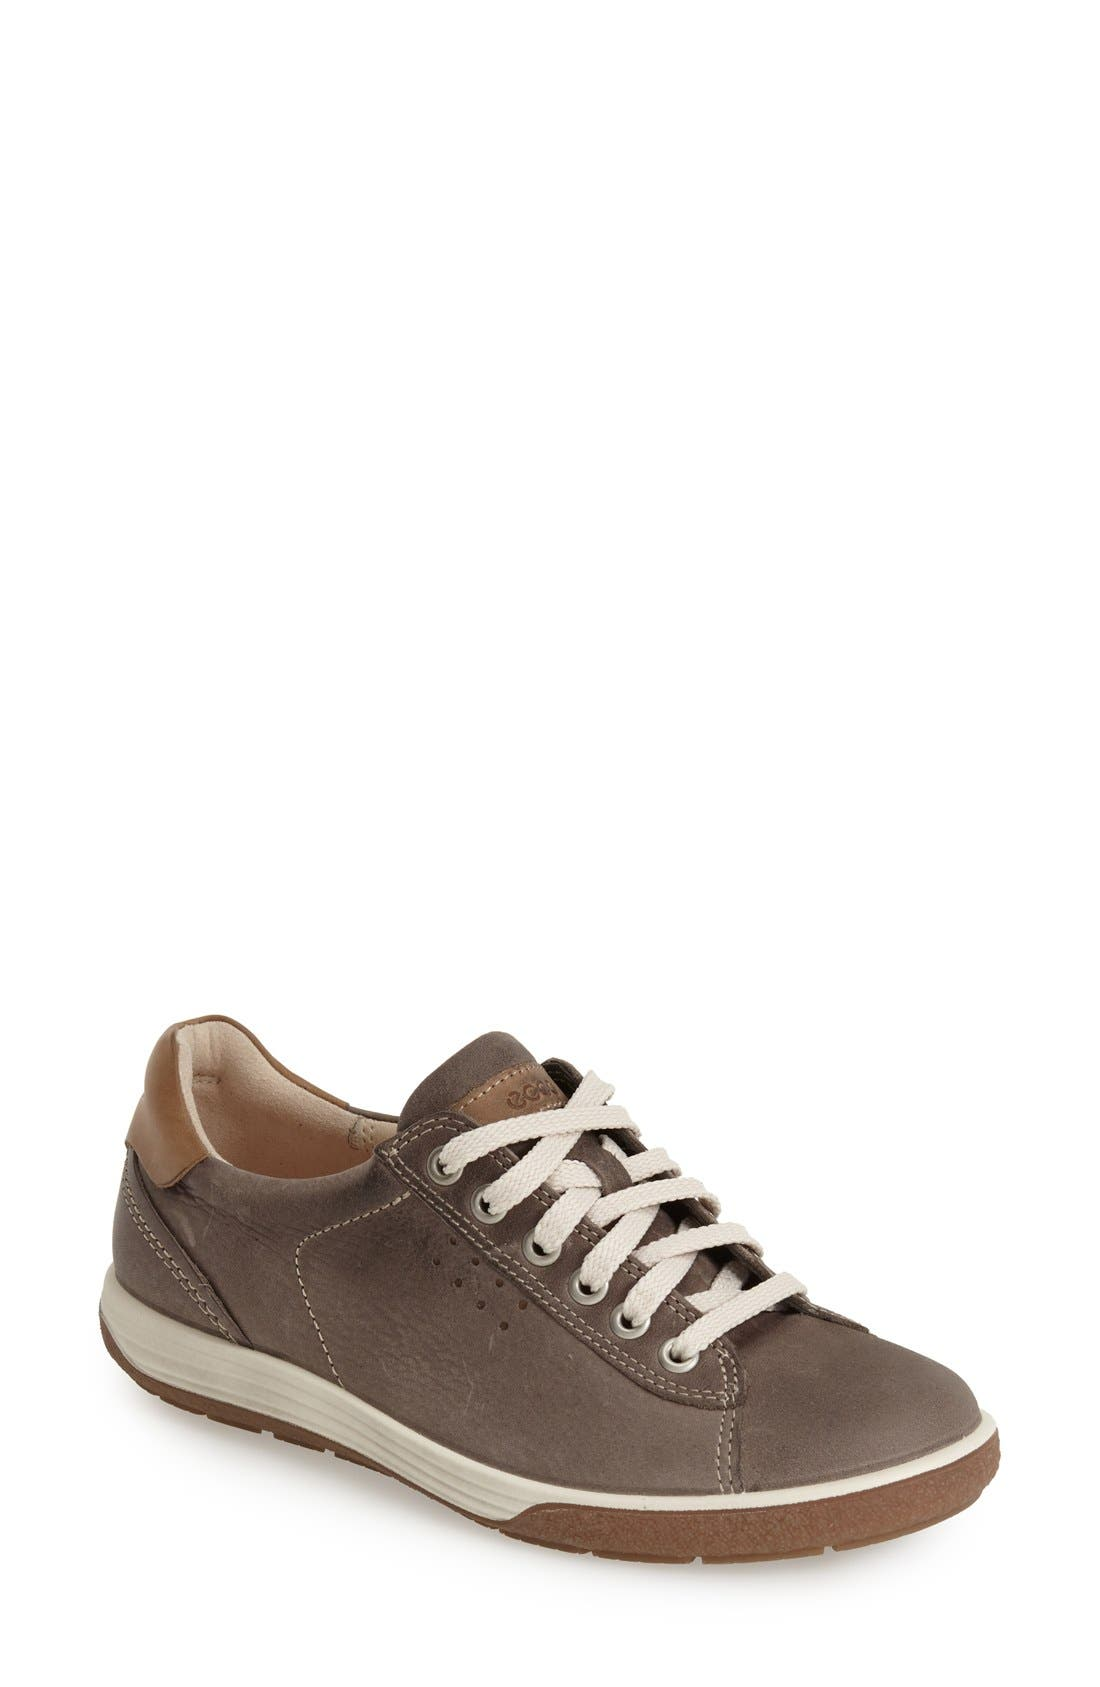 'Chase II' Sneaker,                         Main,                         color, Warm Grey